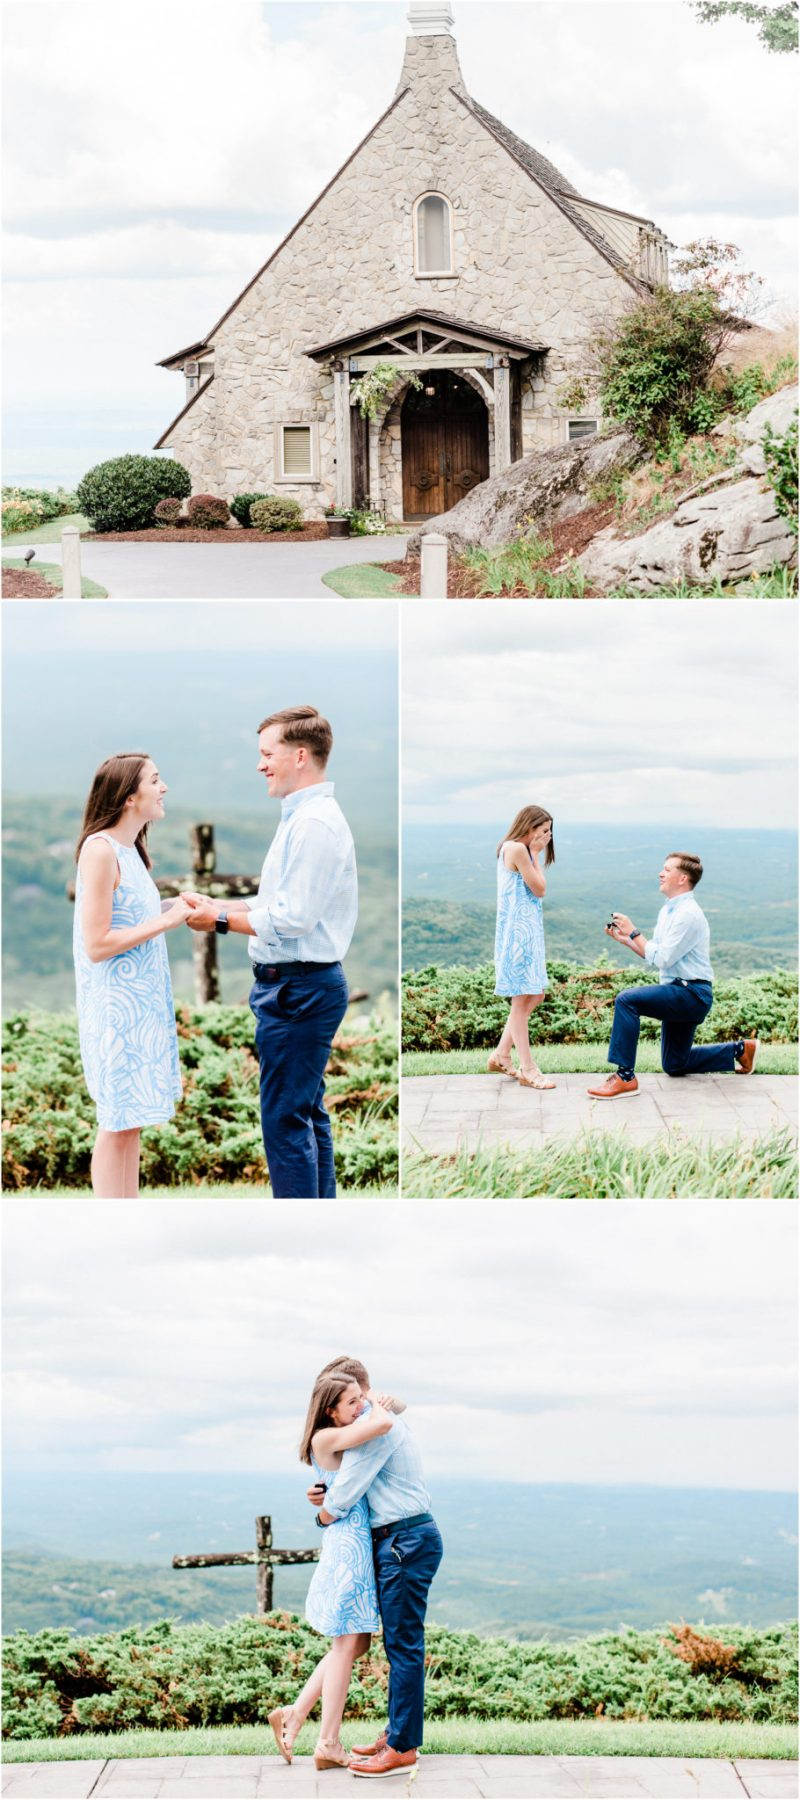 Glassy Chapel Family Session at the Cliffs in Landrum, South Carolina